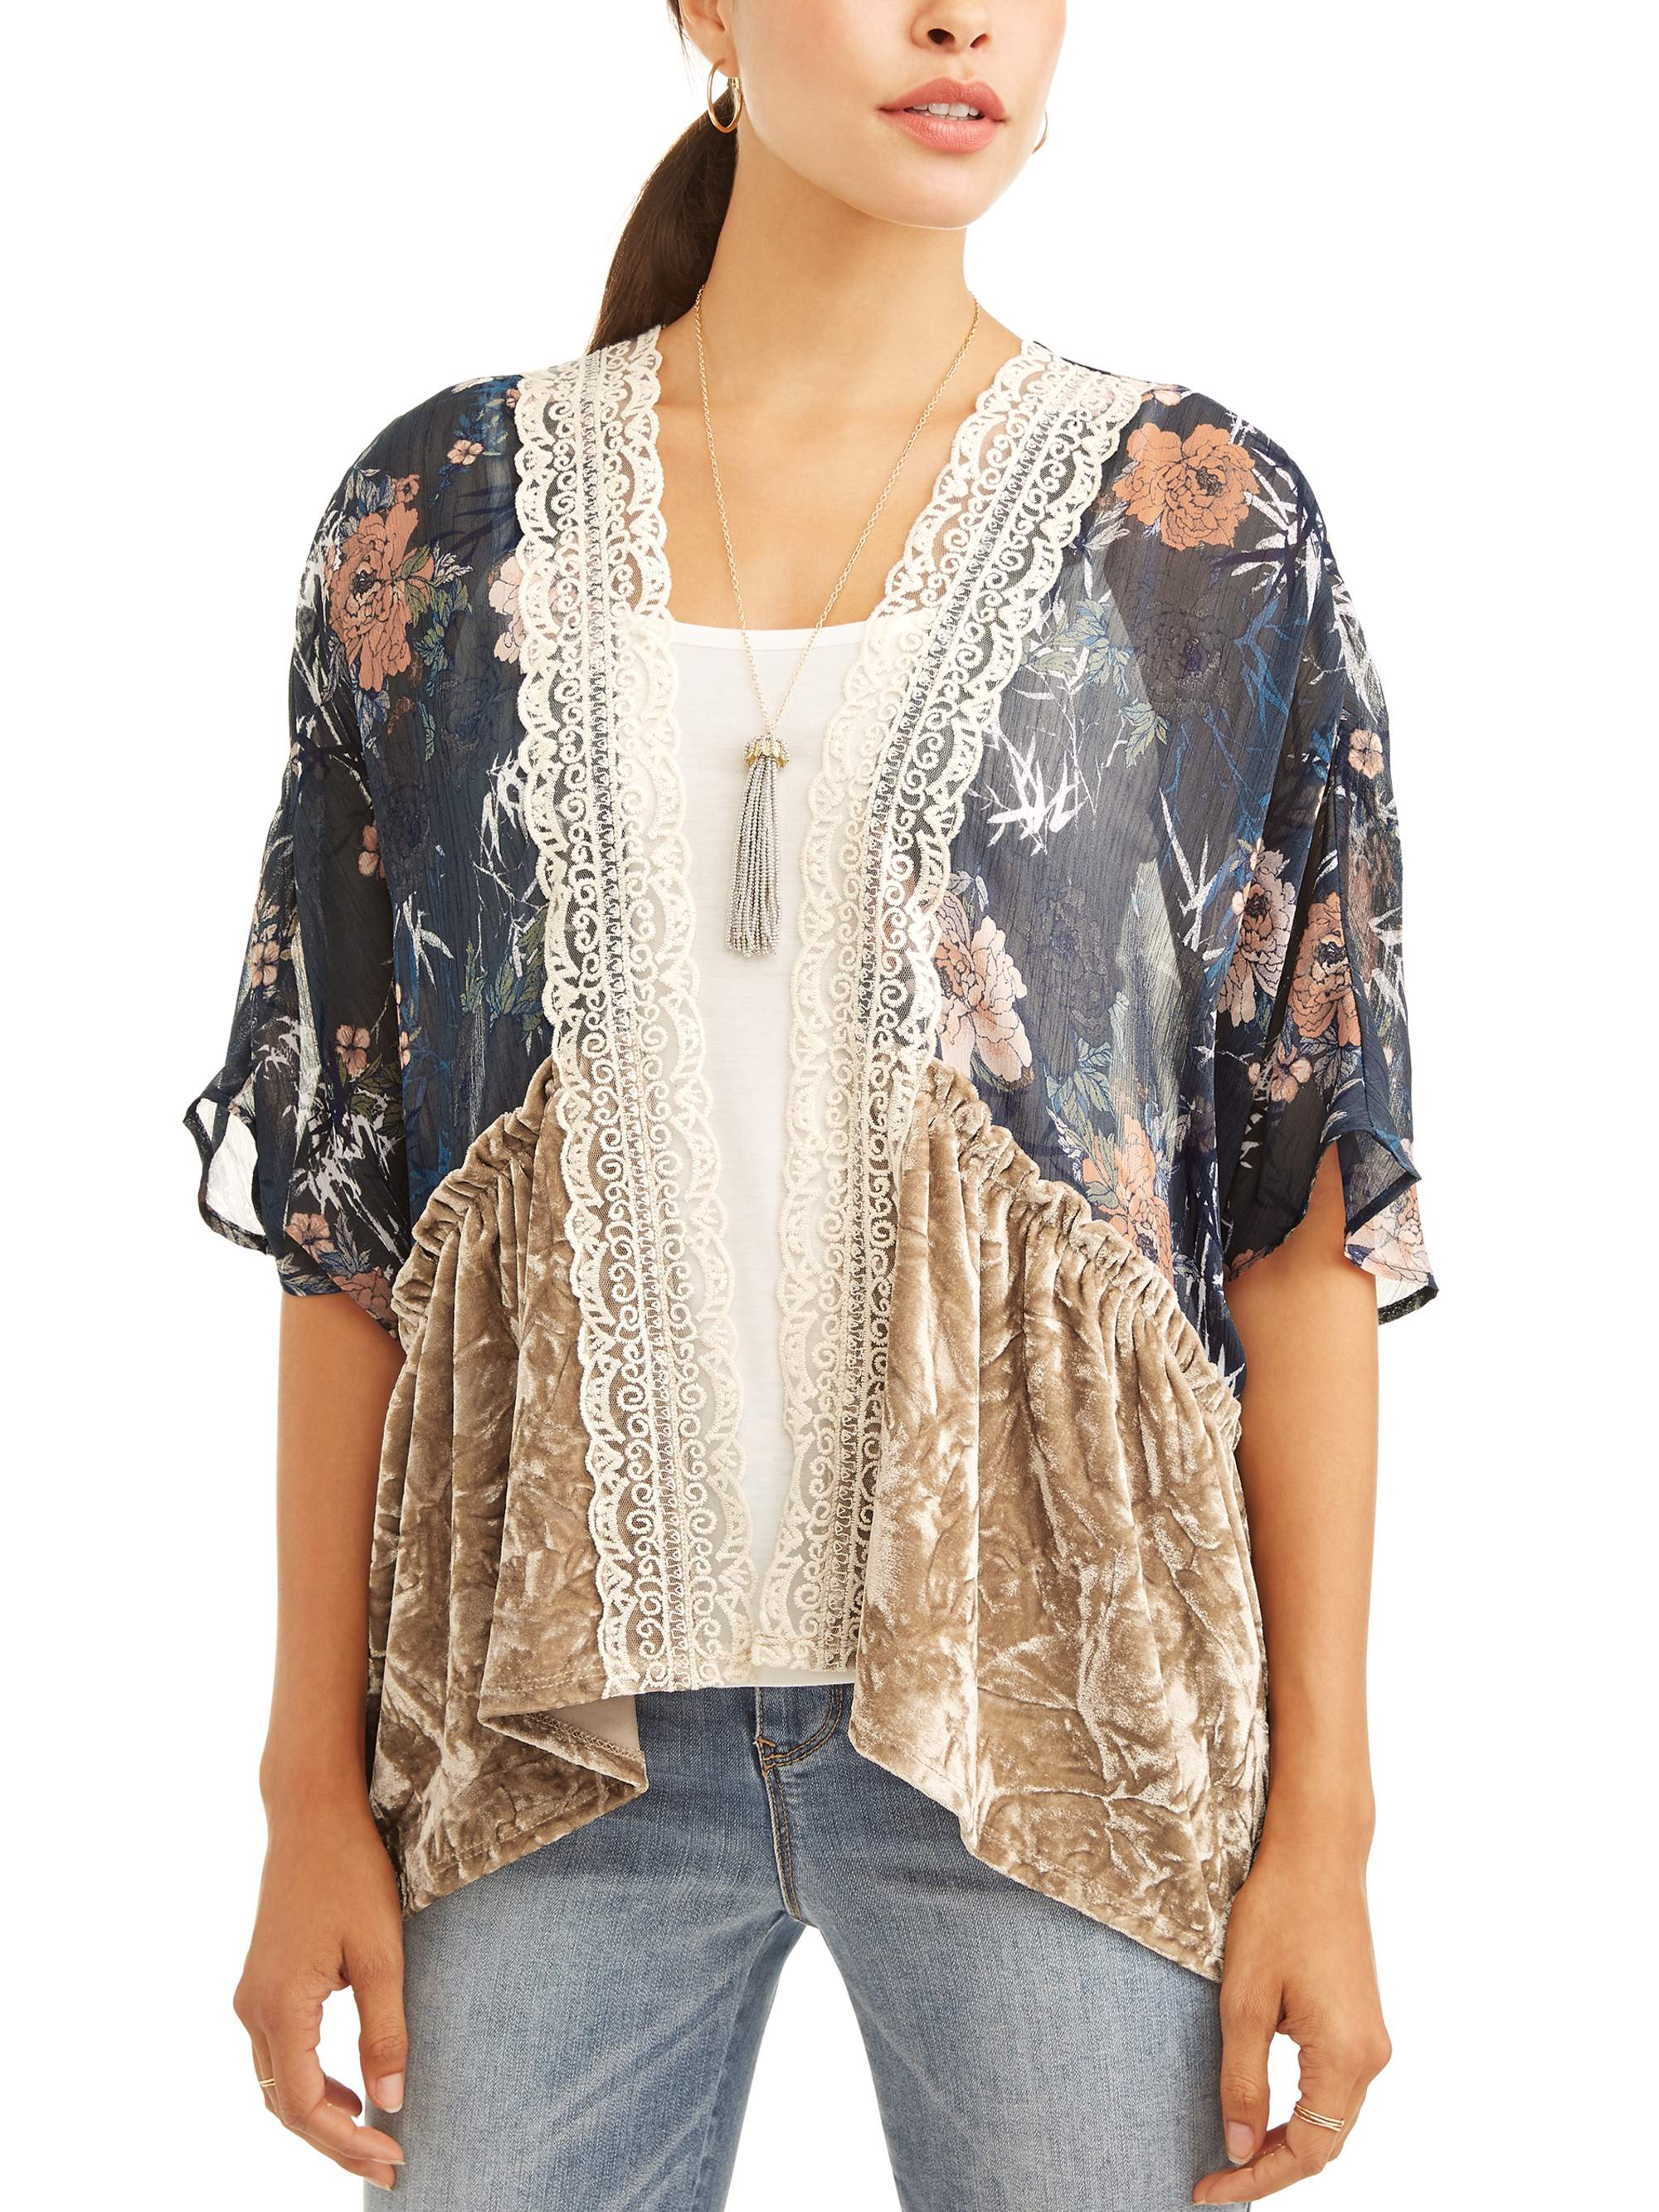 Women's Kimono 3fer Tank and Necklace by ALL ACCESS APPAREL- 4_30